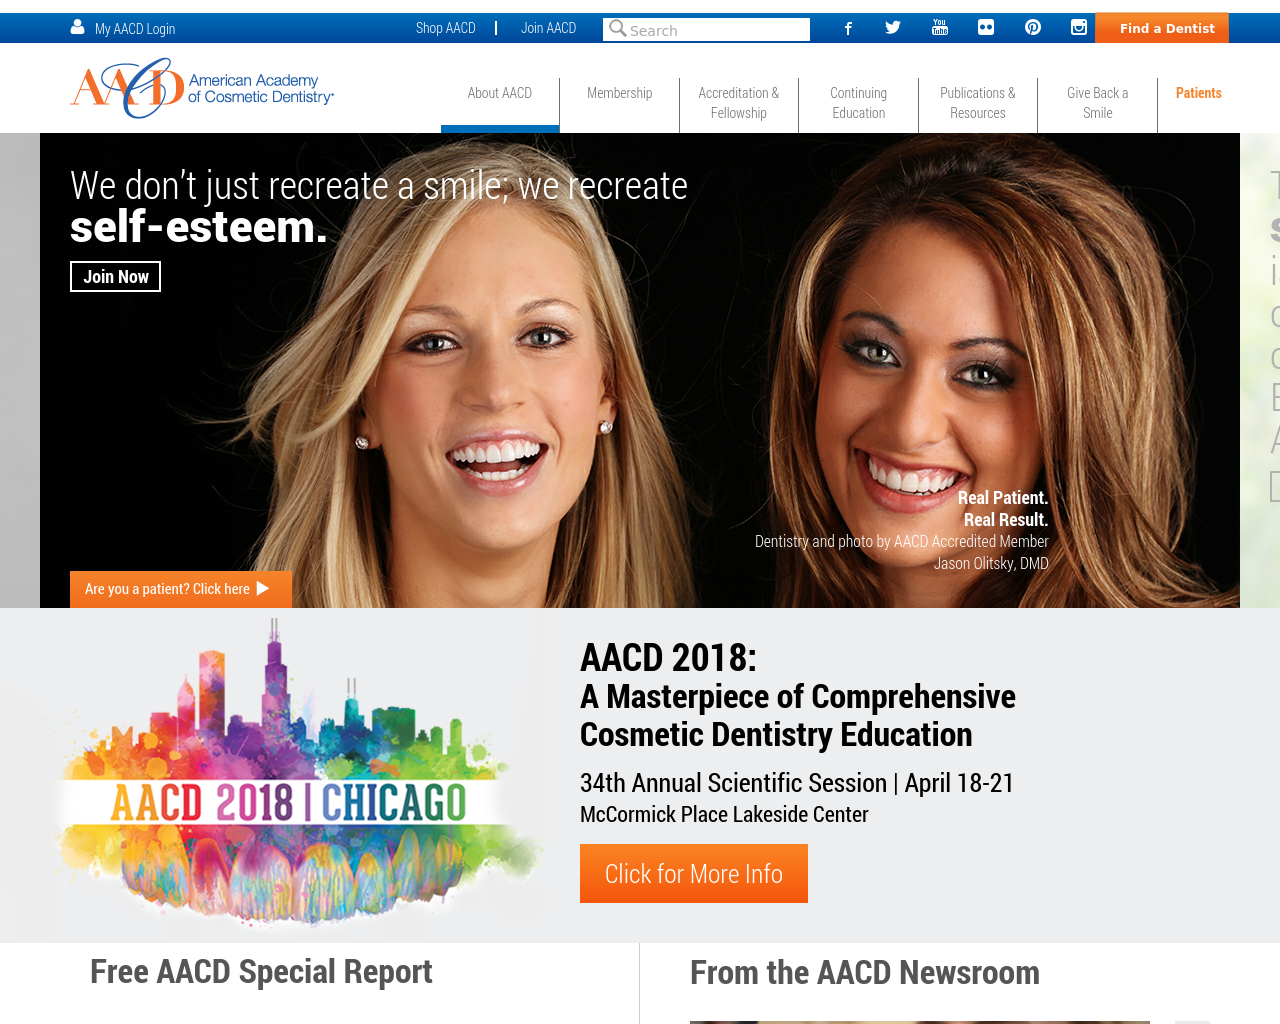 AACD-Advertising-Reviews-Pricing